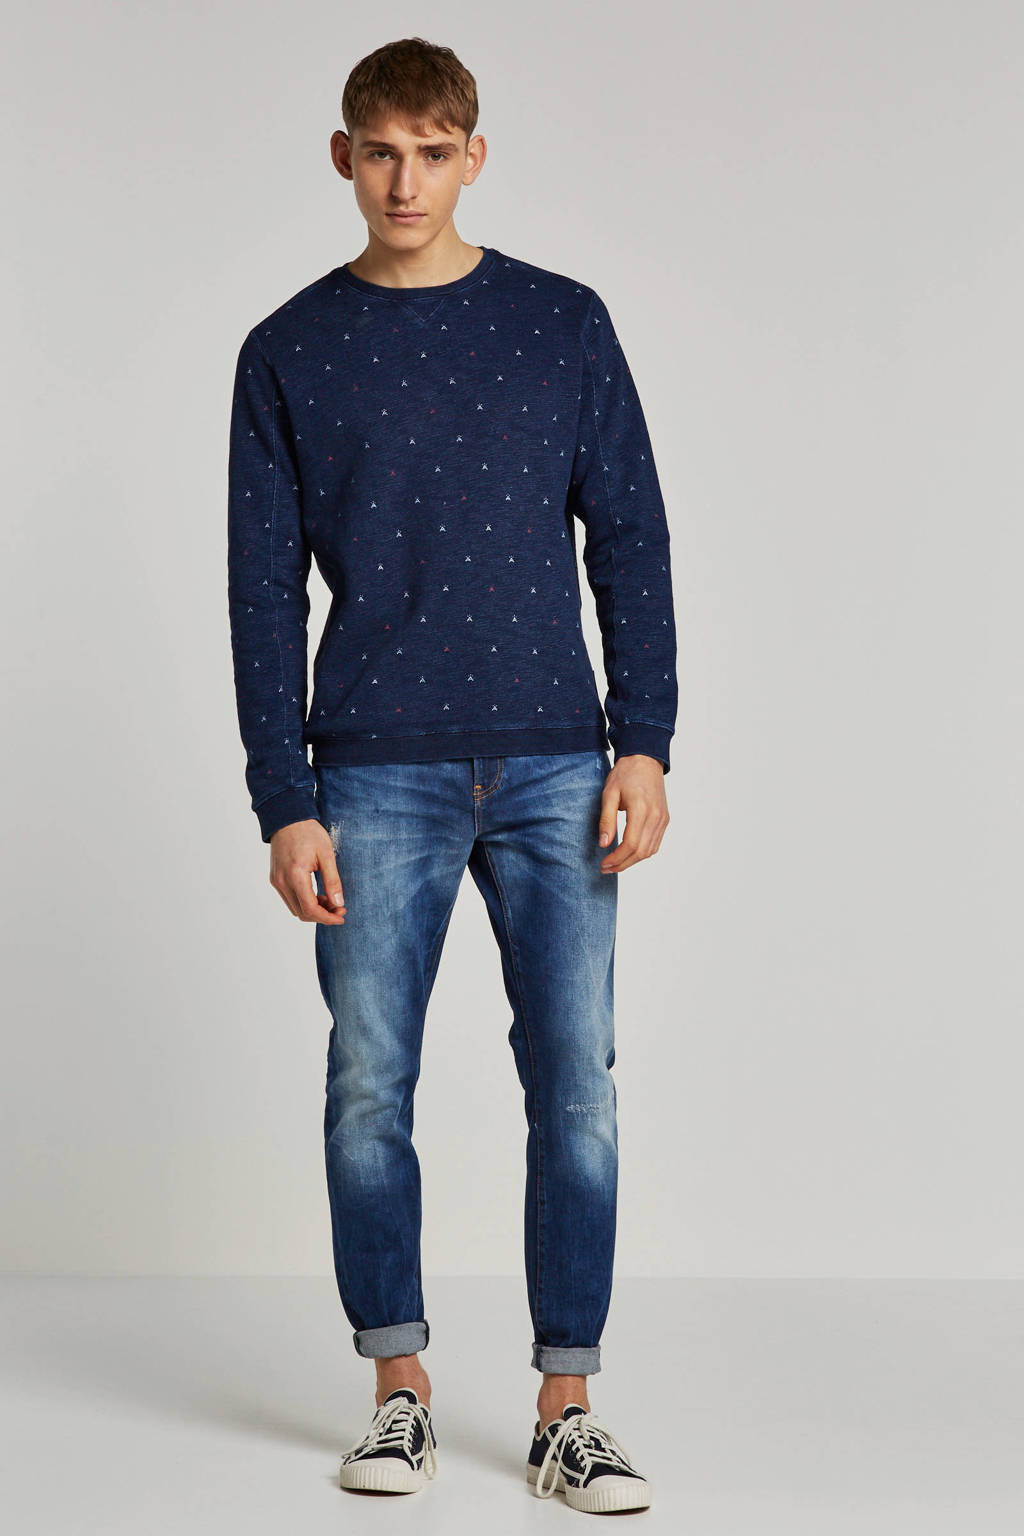 Scotch & Soda sweater, Donkerblauw